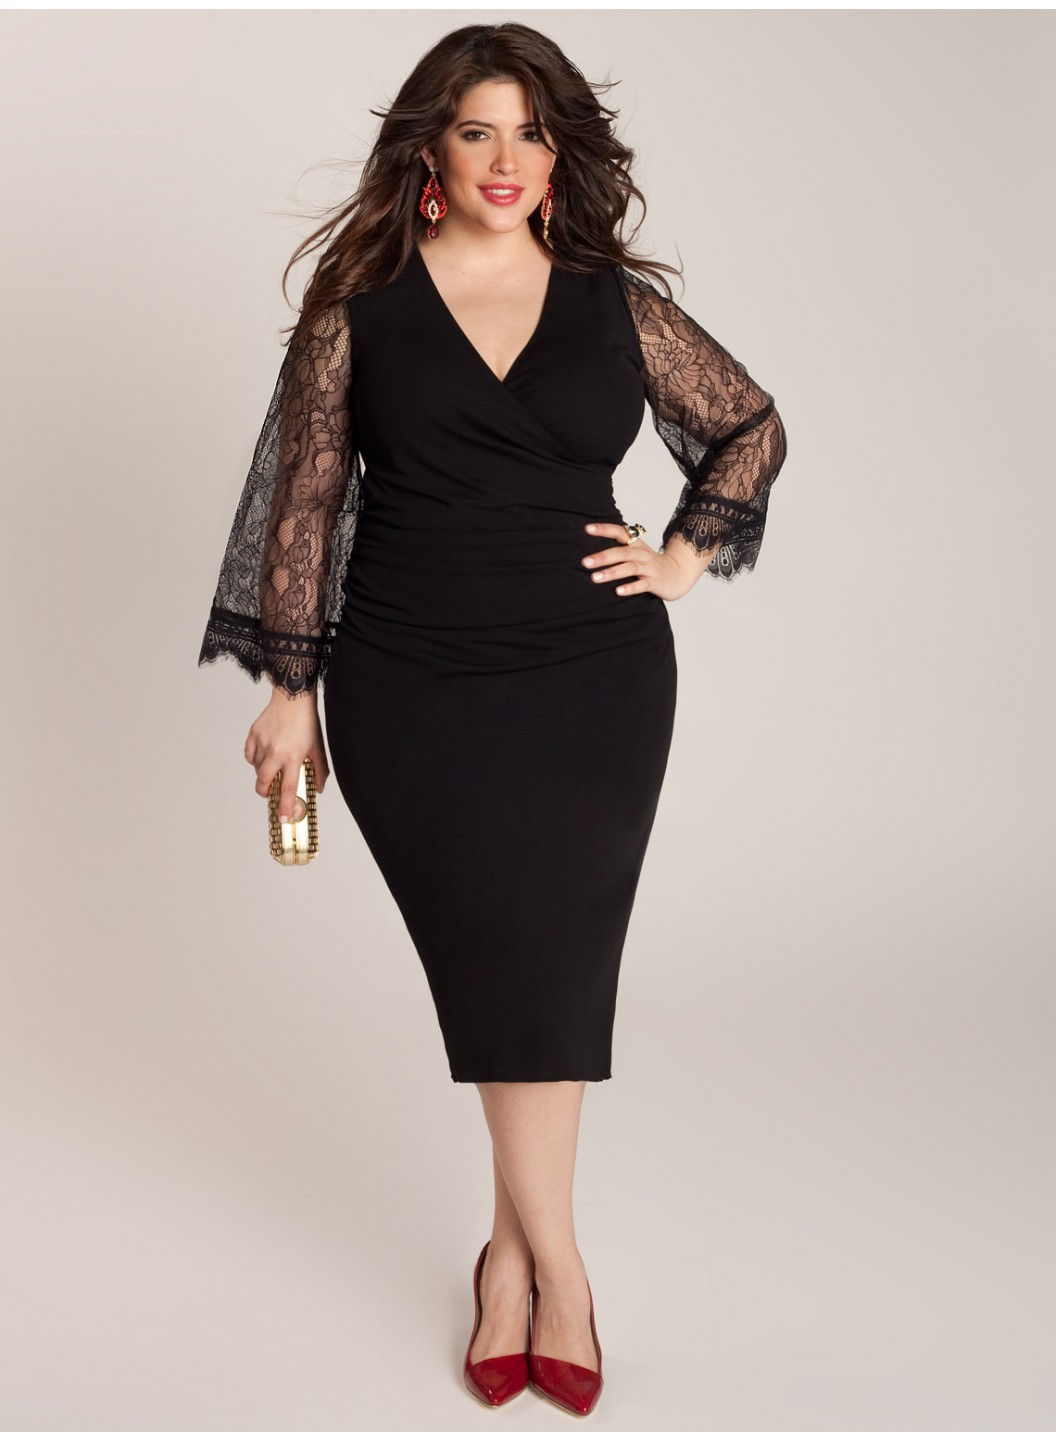 Shop for plus size clothing at Target. Find exclusive and unique styles with Ava & Viv. Free shipping on orders $35+.